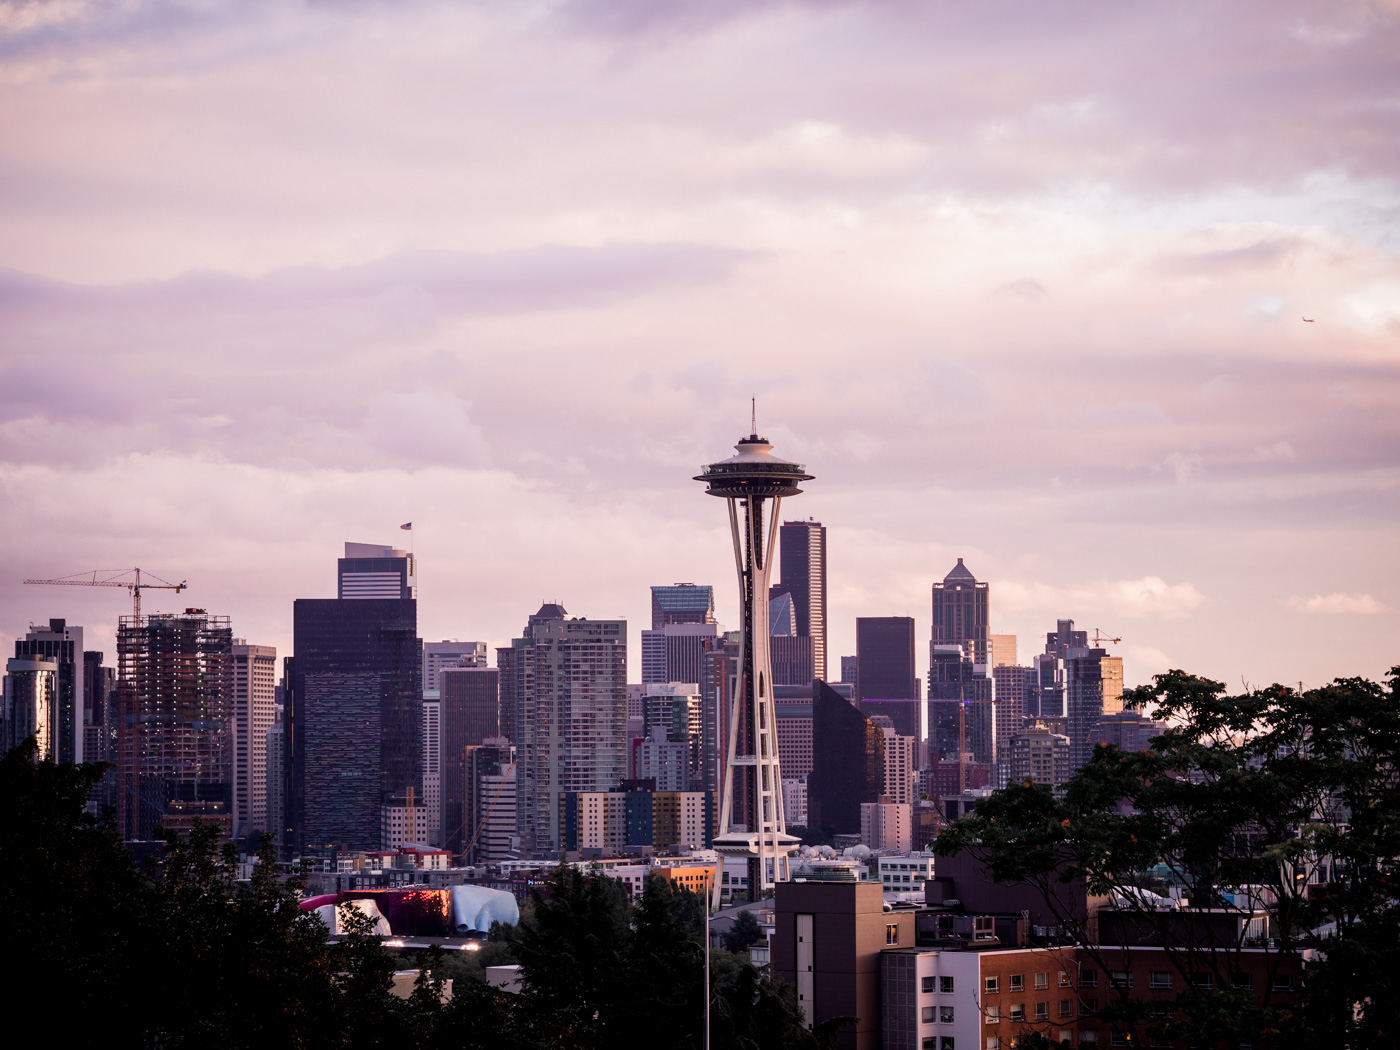 View of the Seattle skyline at sunset from Kerry Park